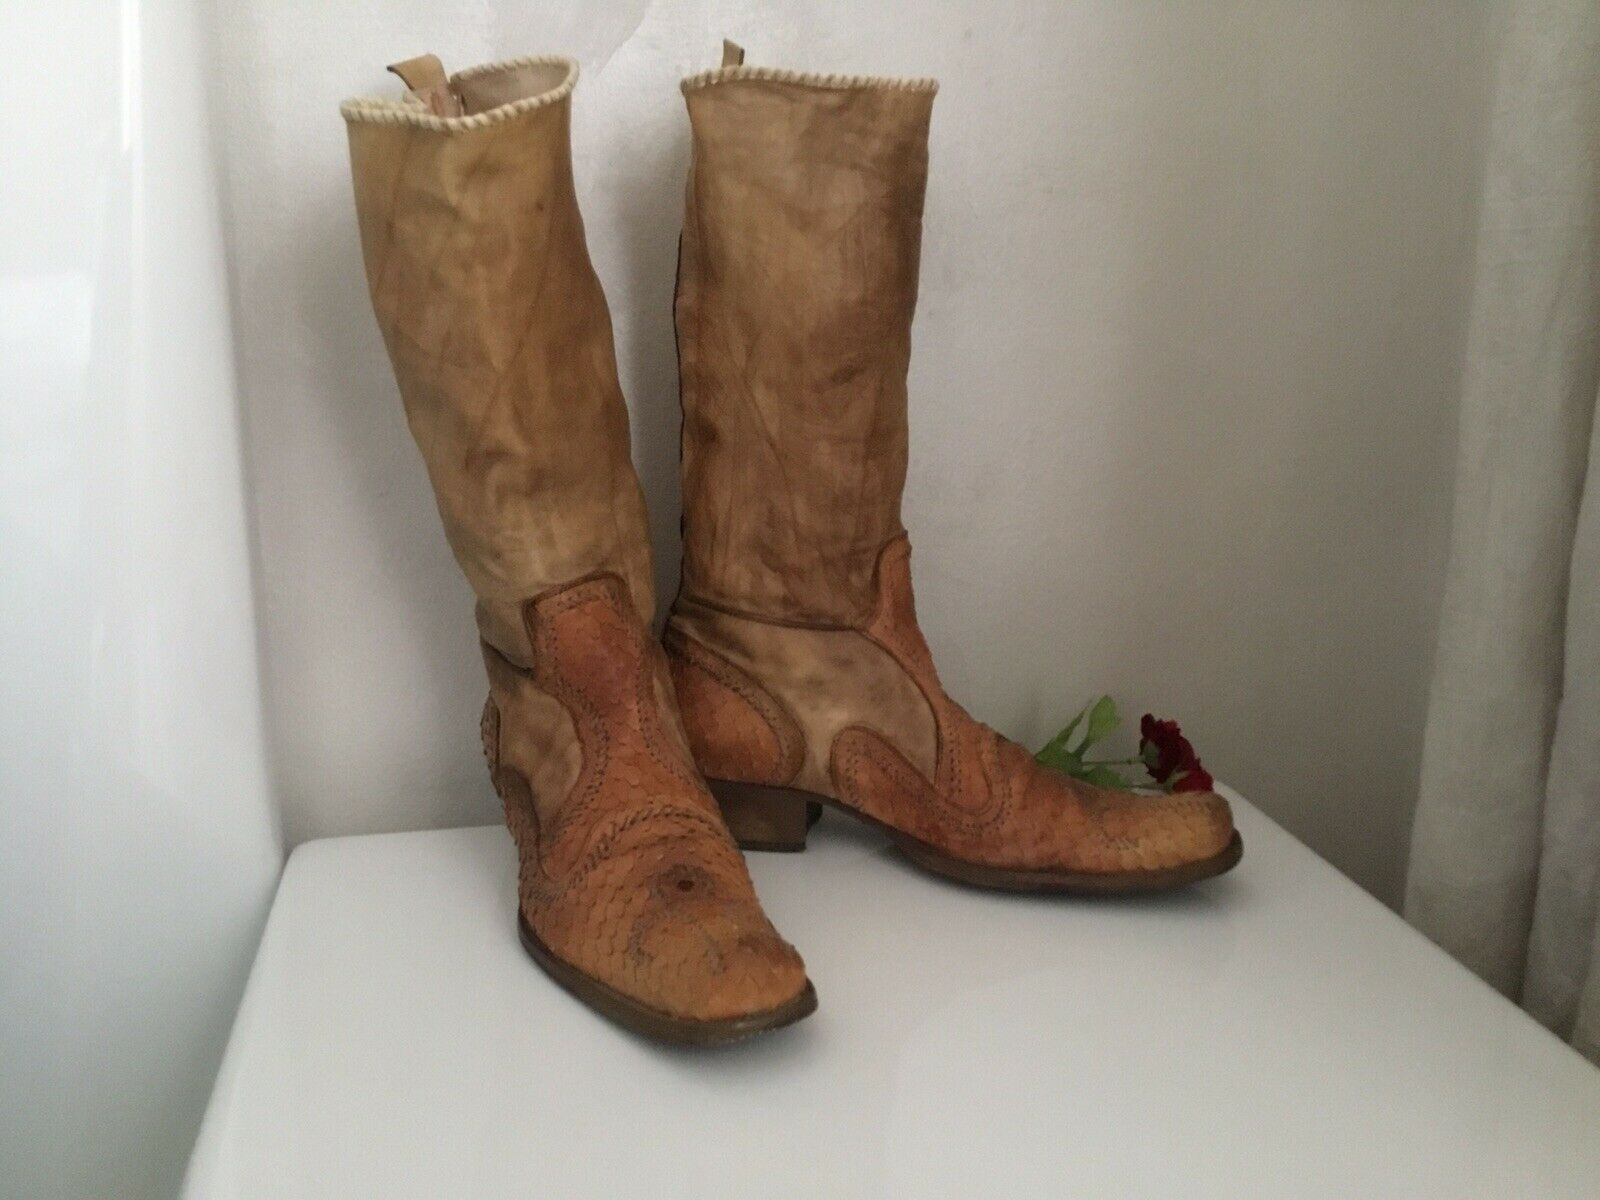 outlet online  Ladies Ladies Ladies Real Cobra Leather Winter Cowboy stivali Hand Made 38 UE  connotazione di lusso low-key